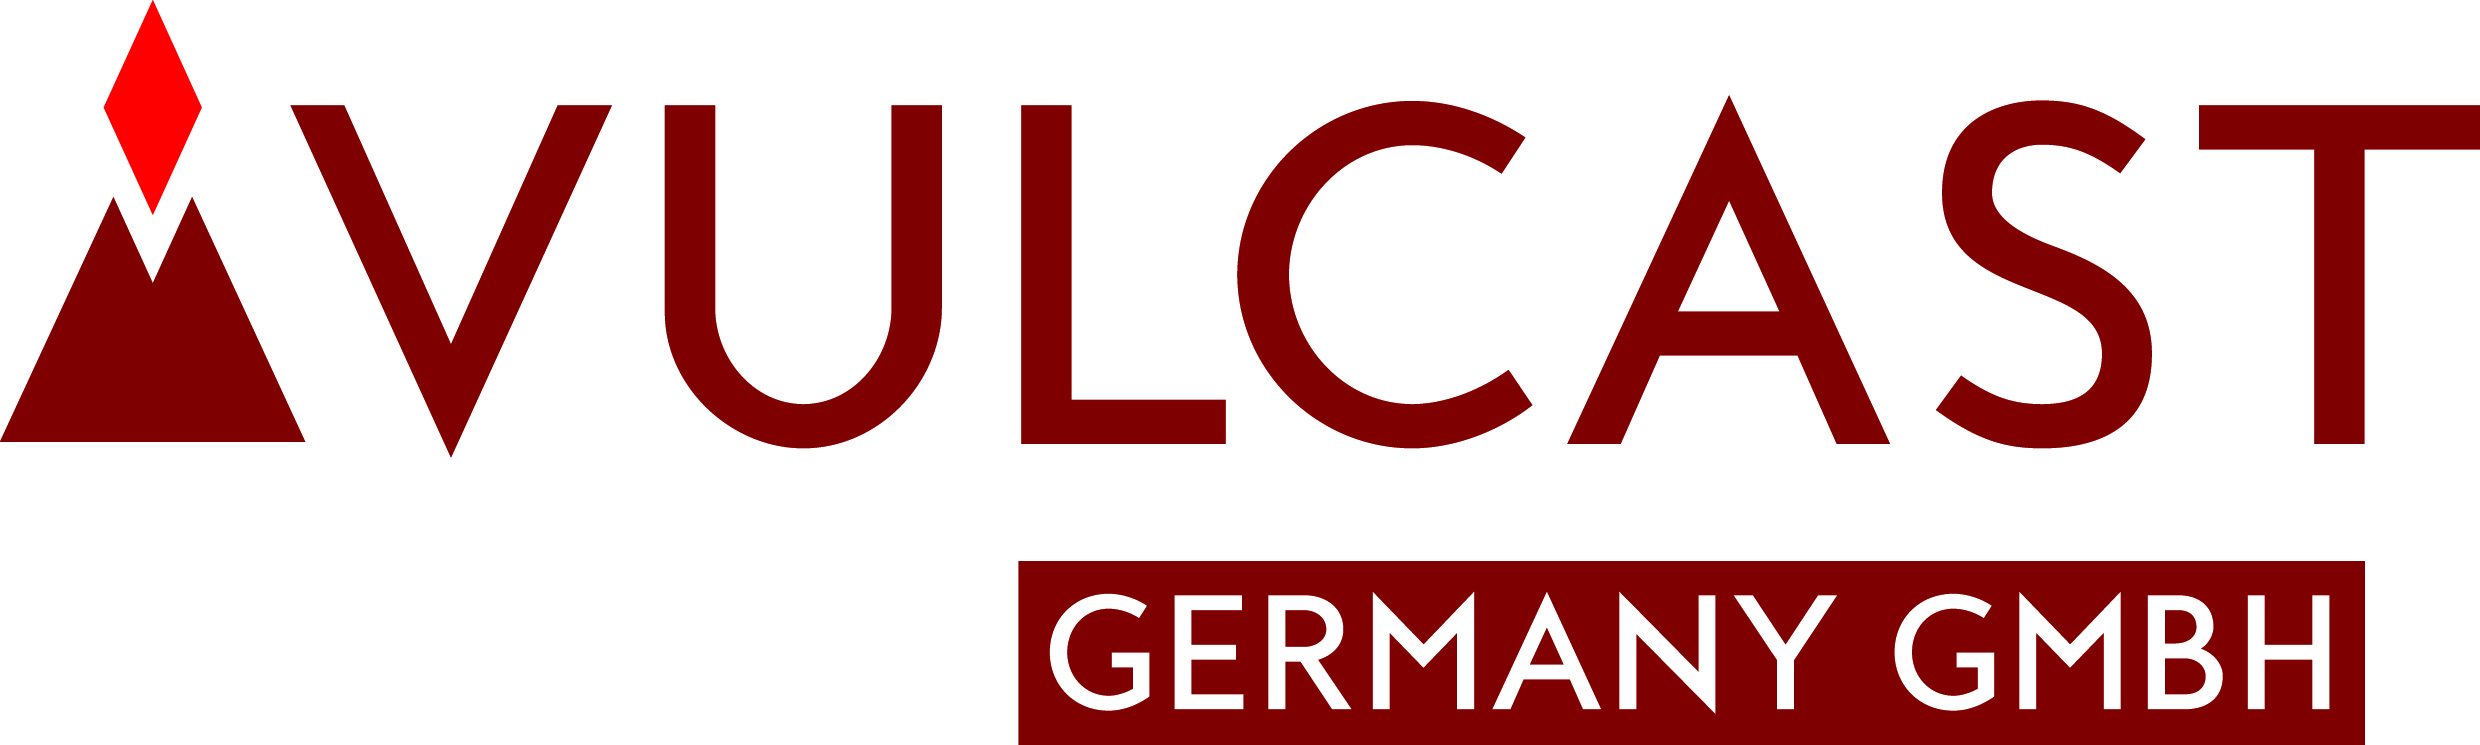 Vulcast Germany GmbH